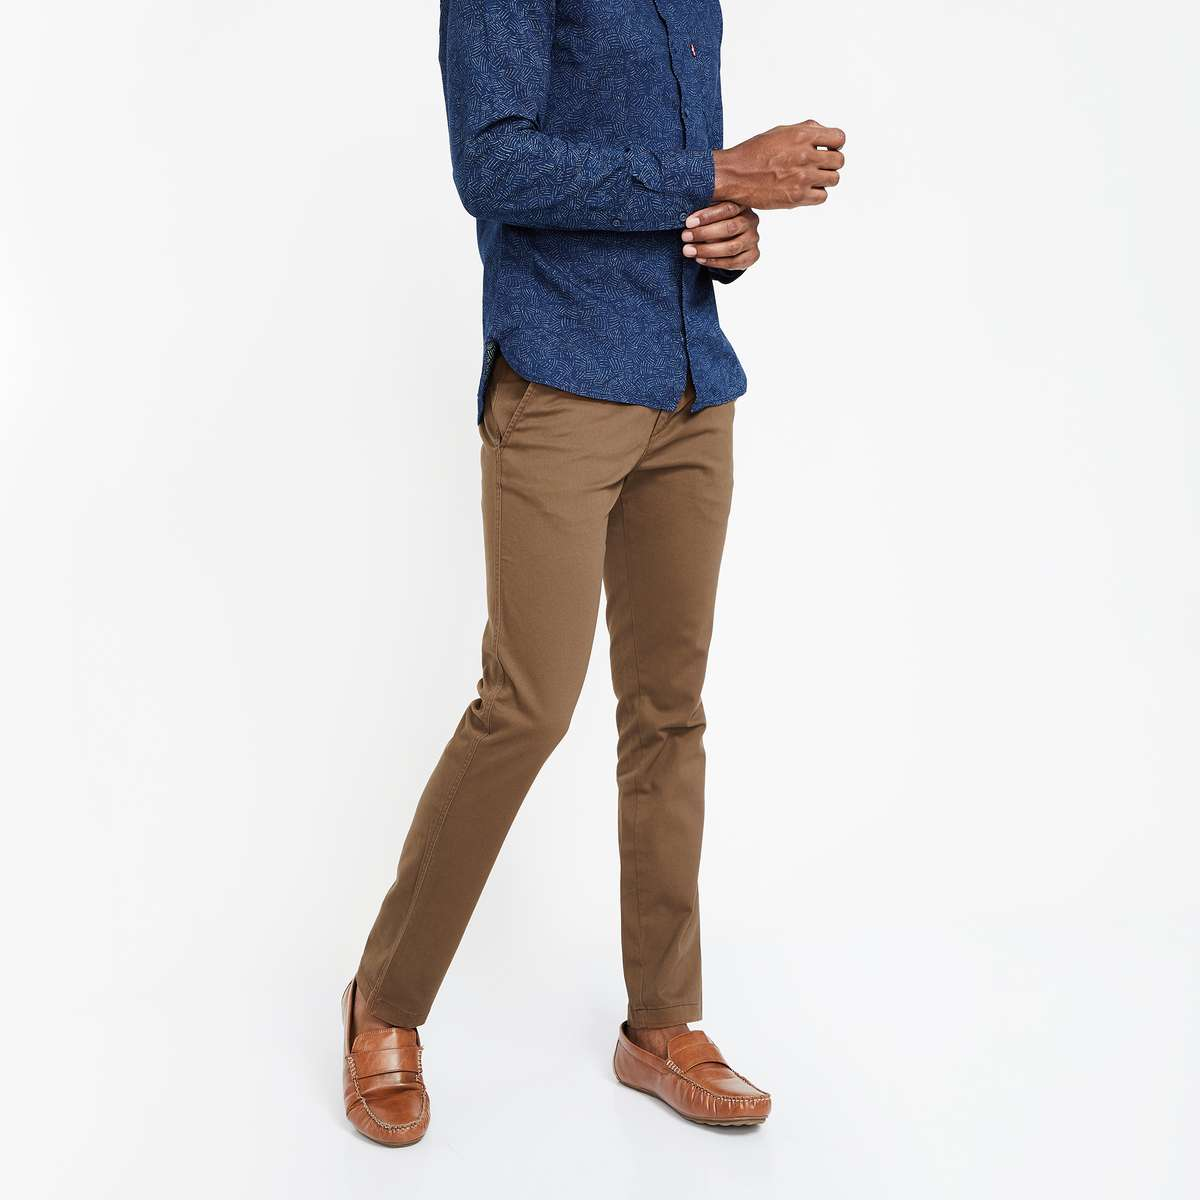 1.CODE Solid Flat-Front Chinos